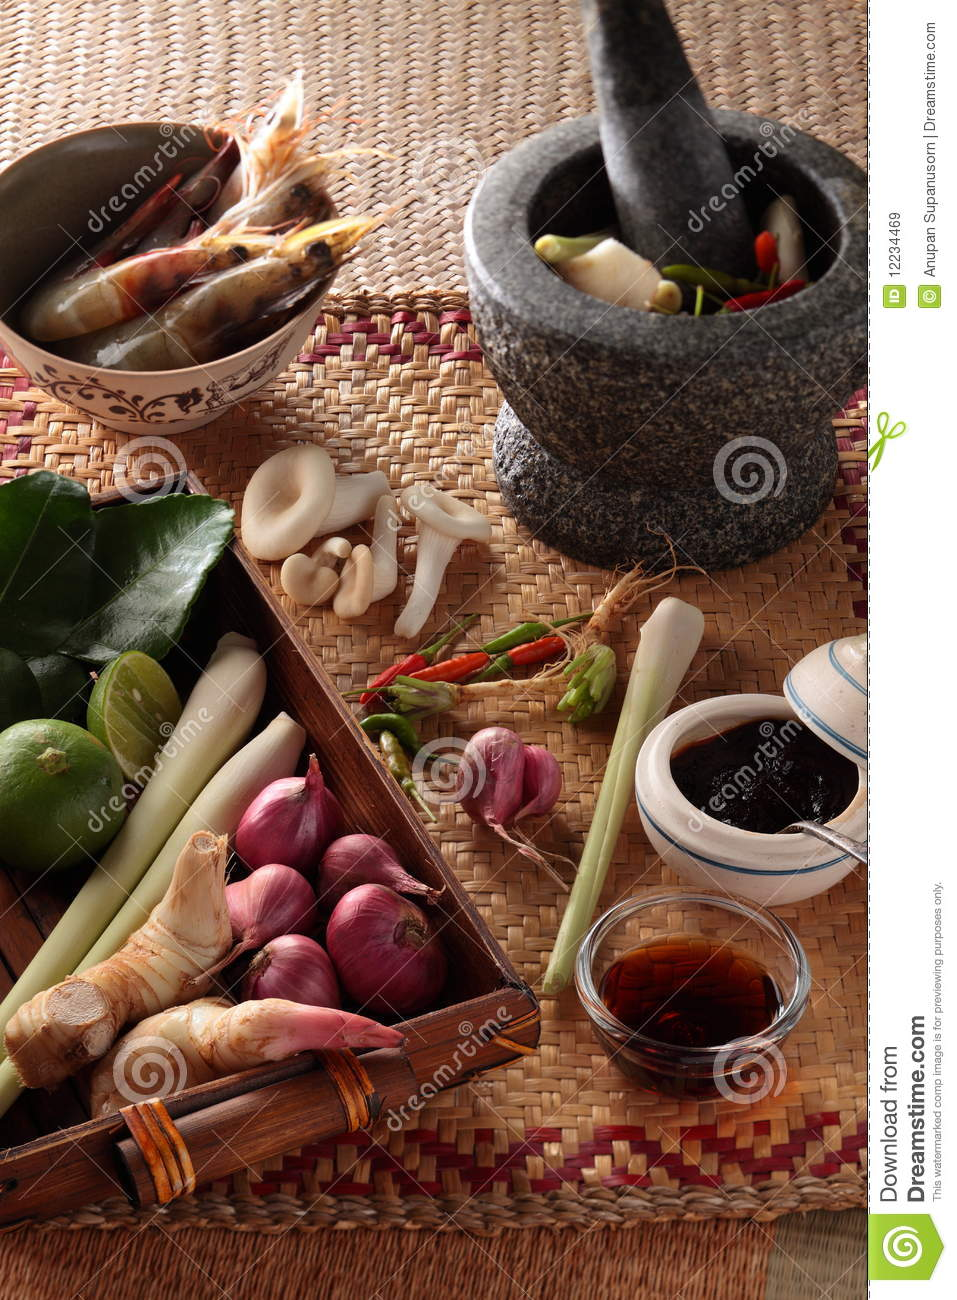 Ingredientes de cocinar tailandeses for Ingredientes para cocinar